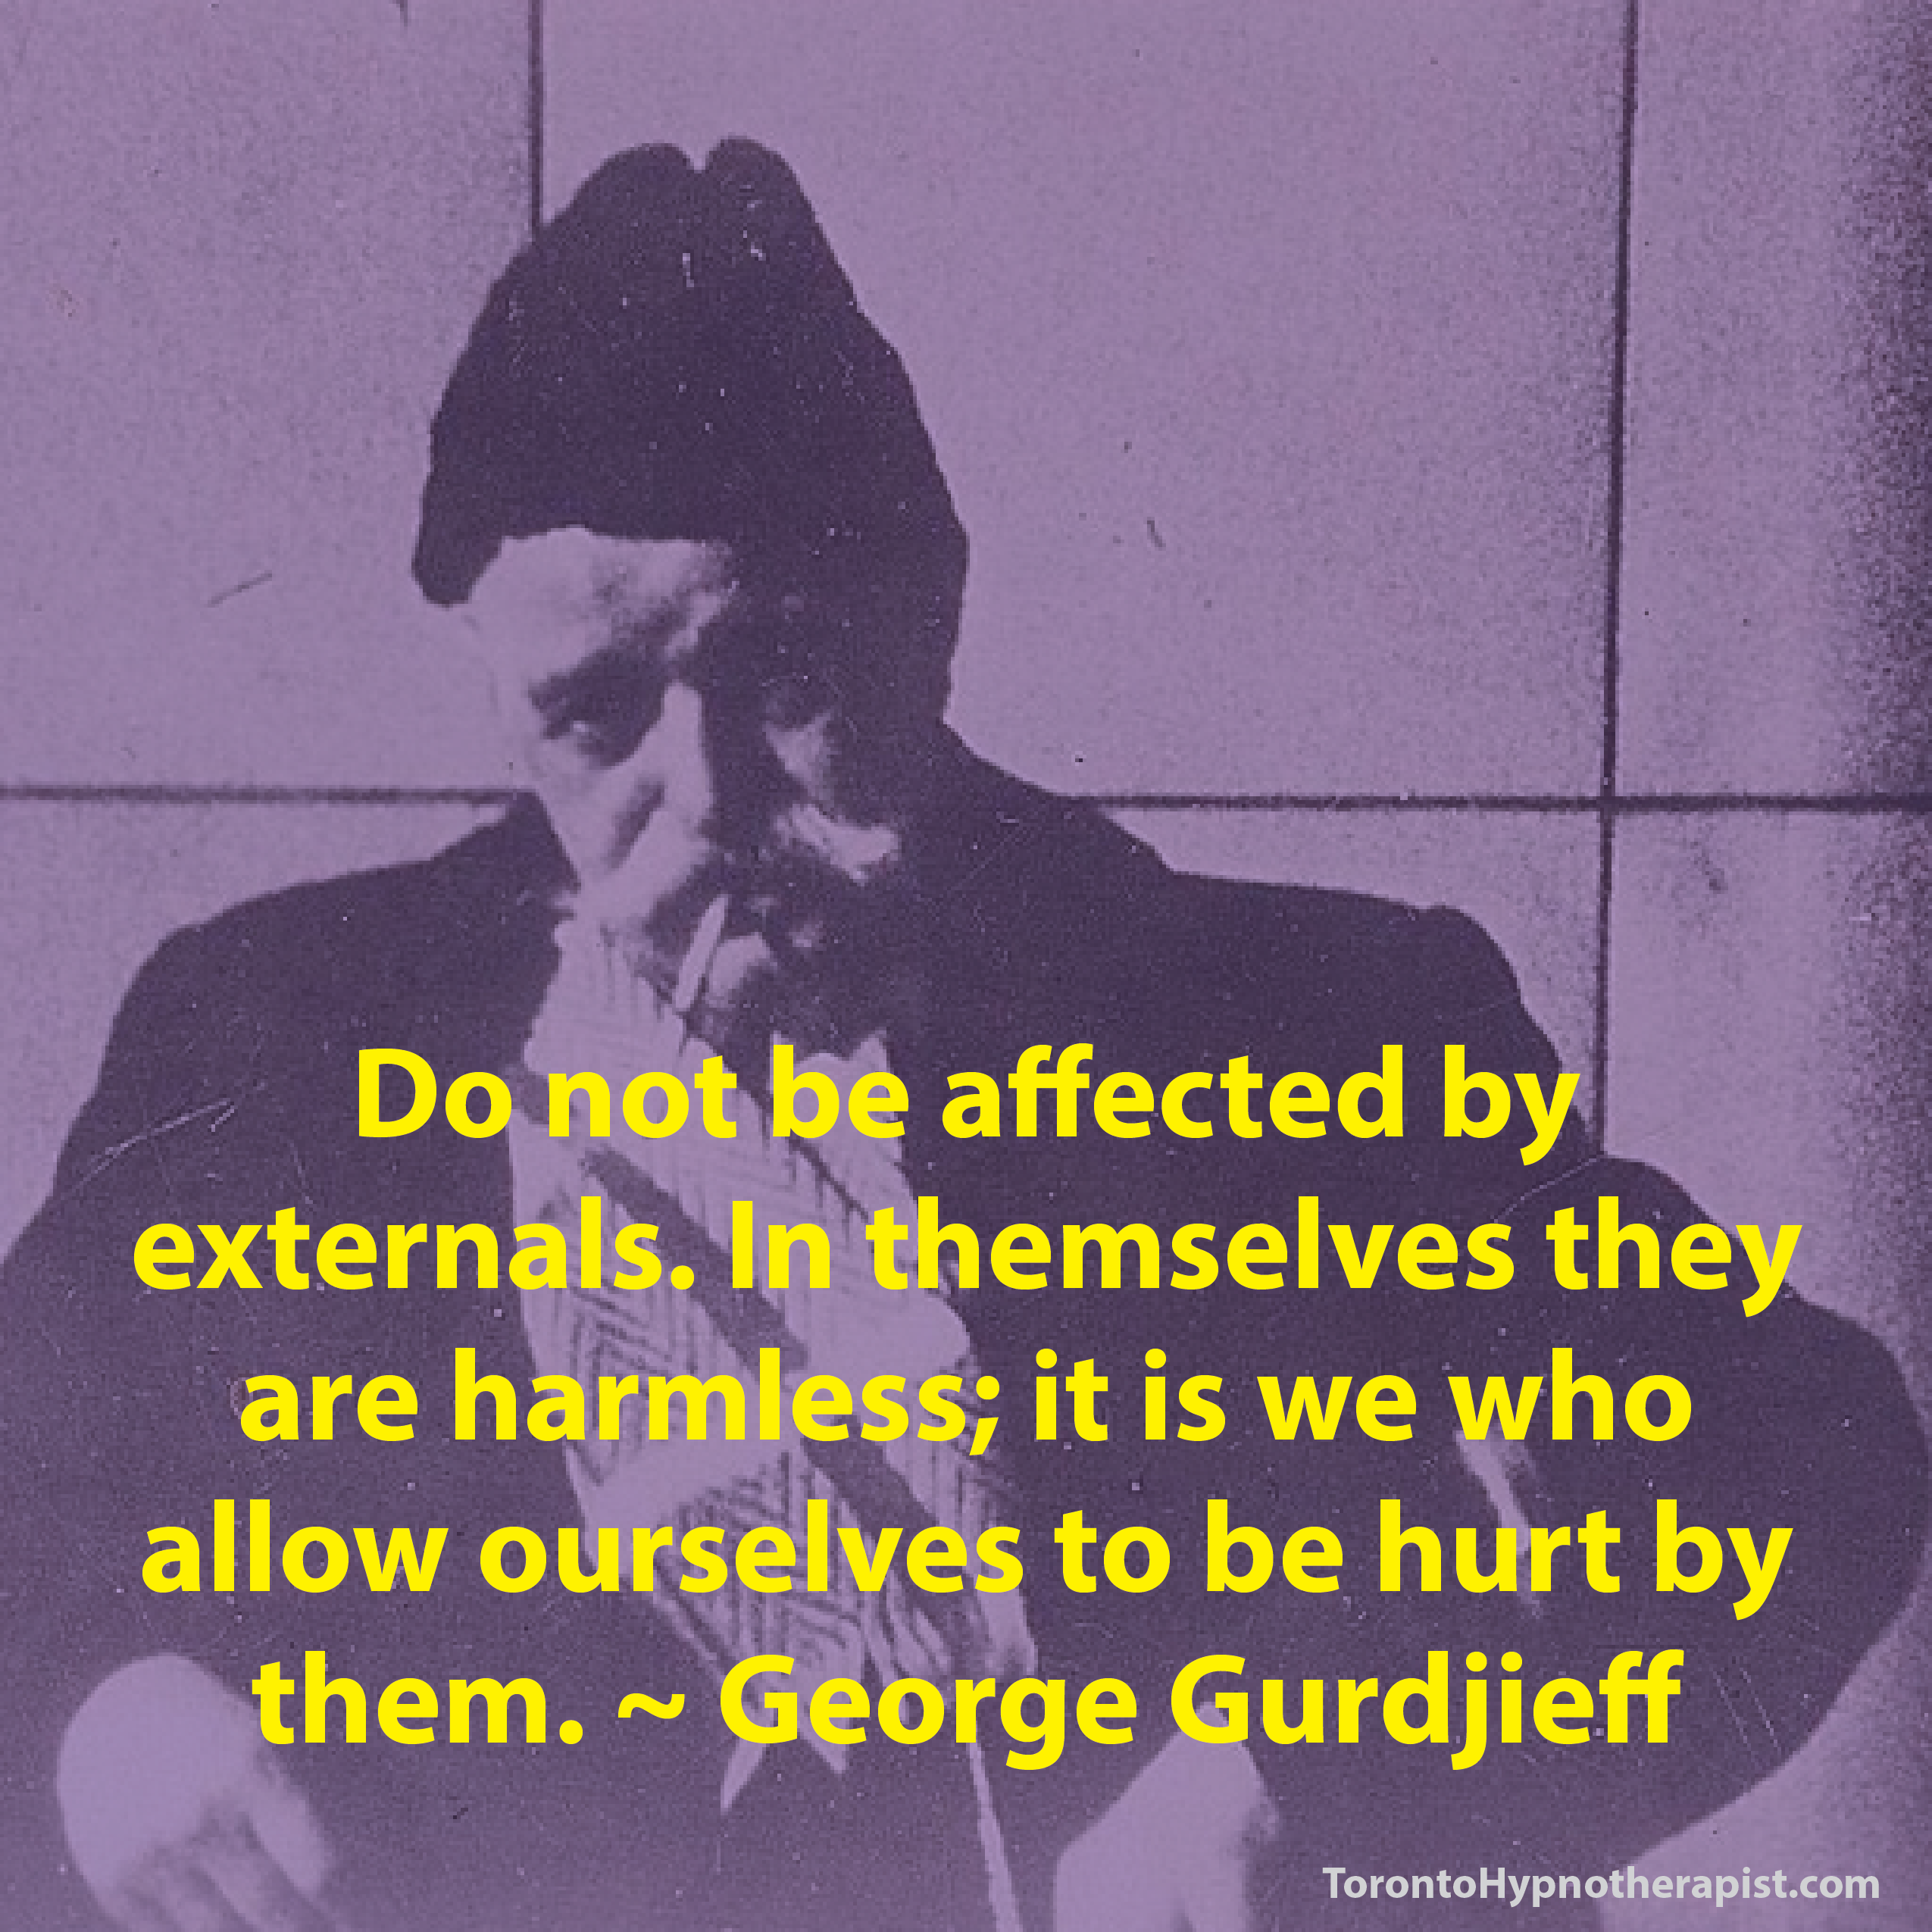 George Gurdjieff Quotes Gurdjieff Quotes George Gurdjieff Philosophy Quotes